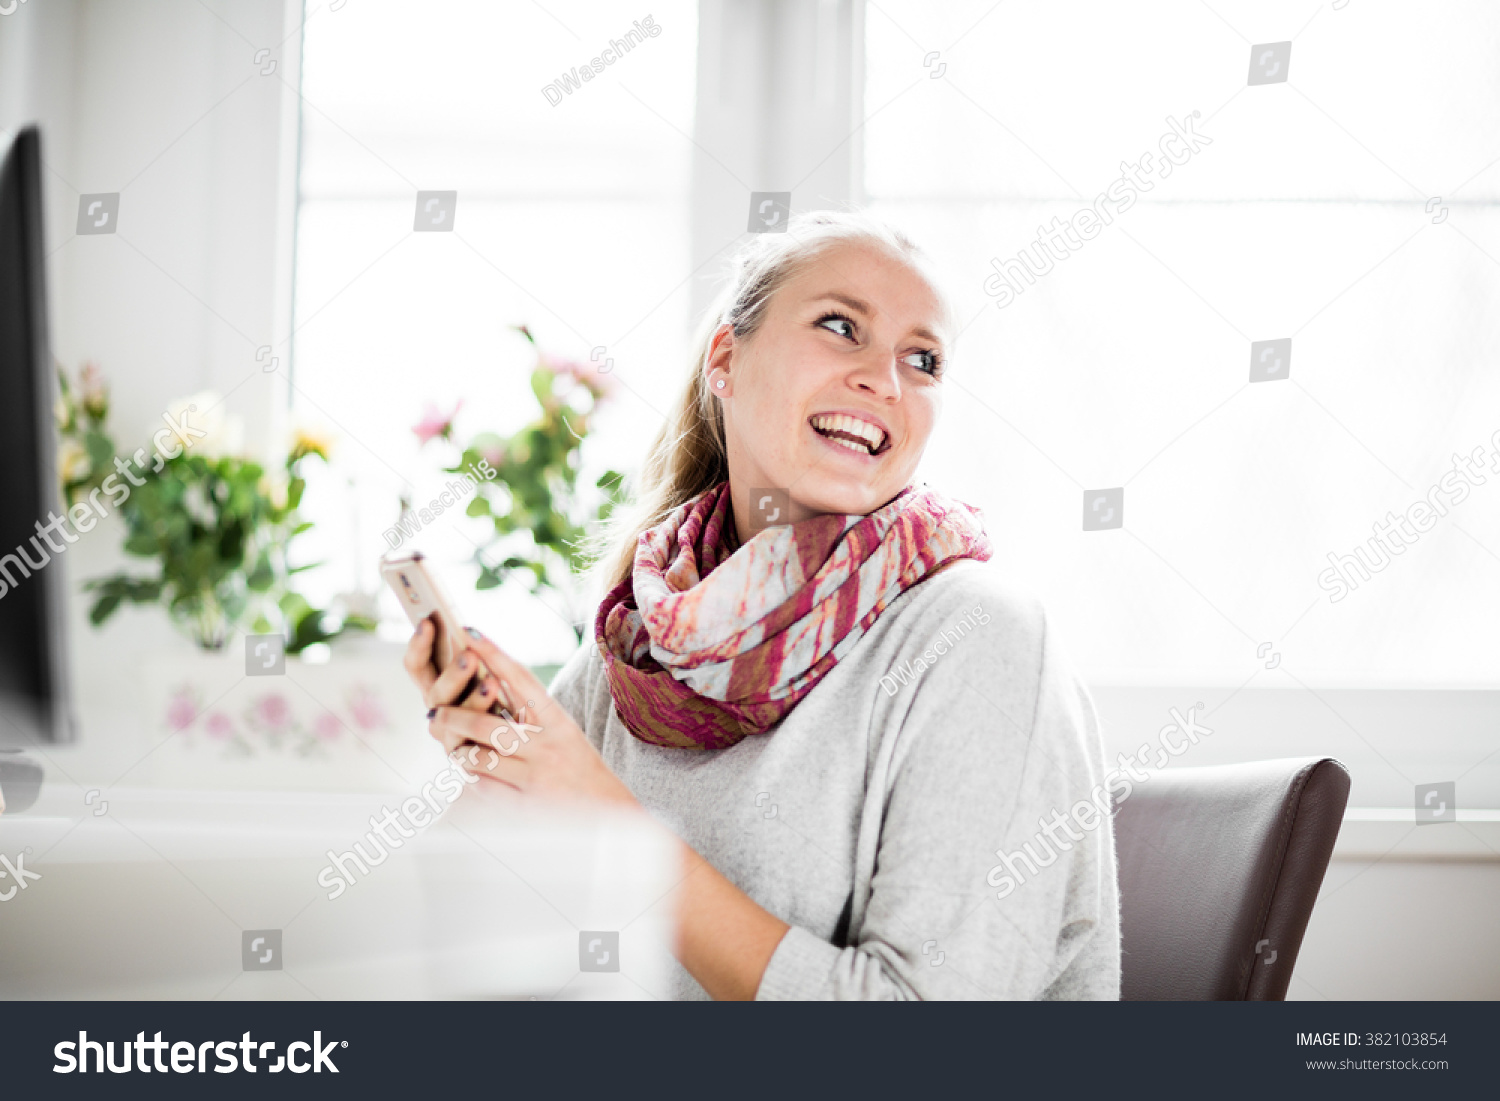 woman working in home office with phone and computer